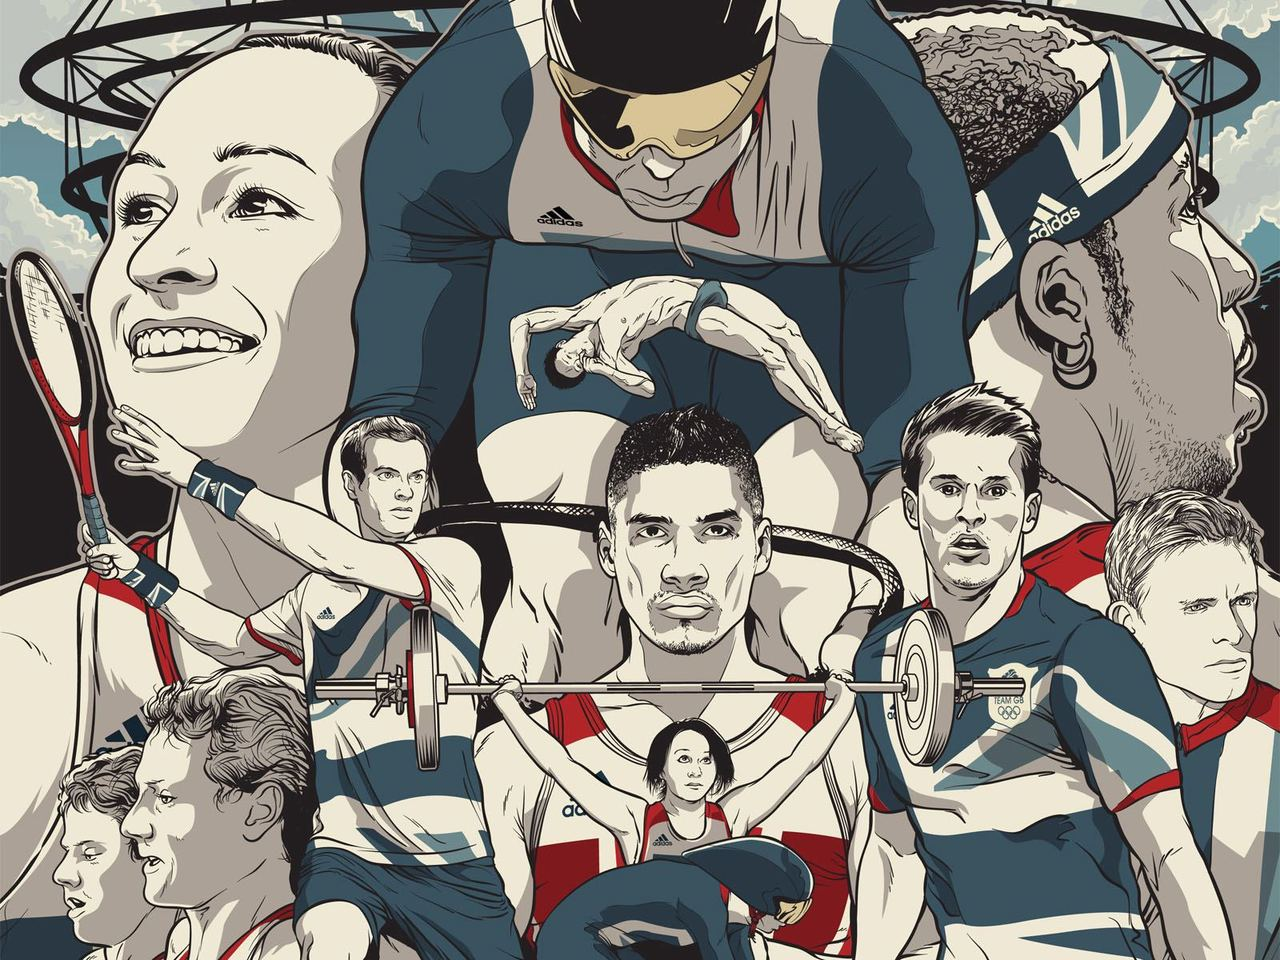 London 2012, It's finally here. Image: Adidas Take the stage campaign